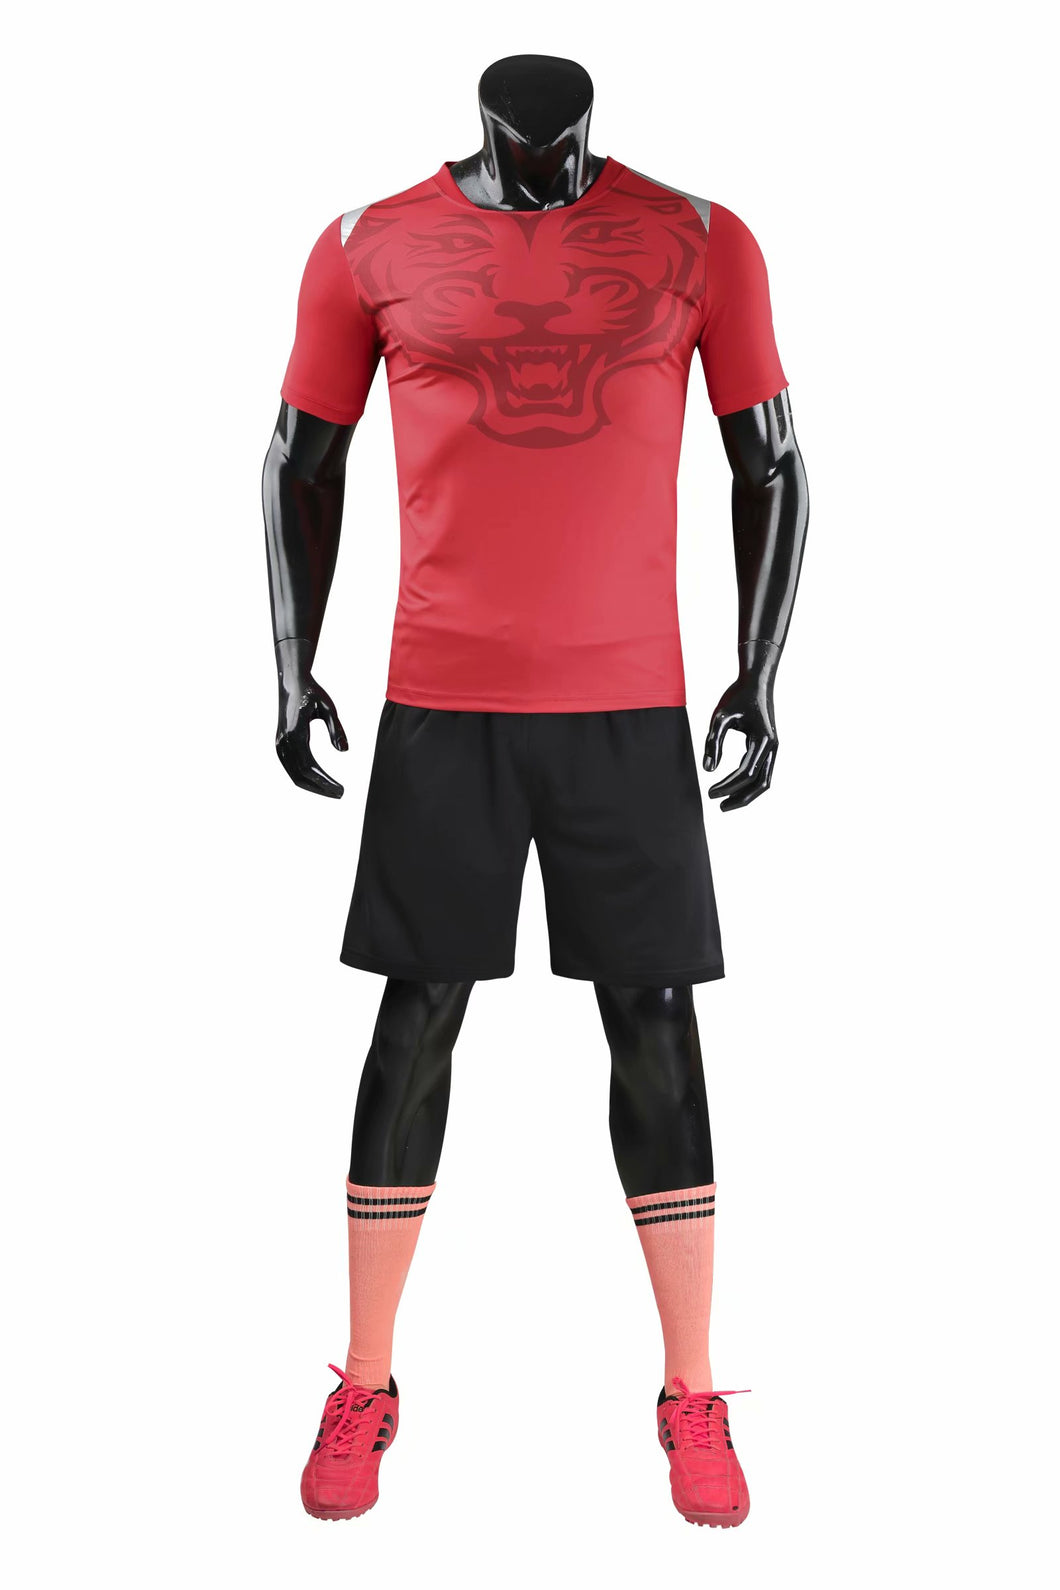 Full Football Kit - Deep Red with Tiger Print and Black Shorts.